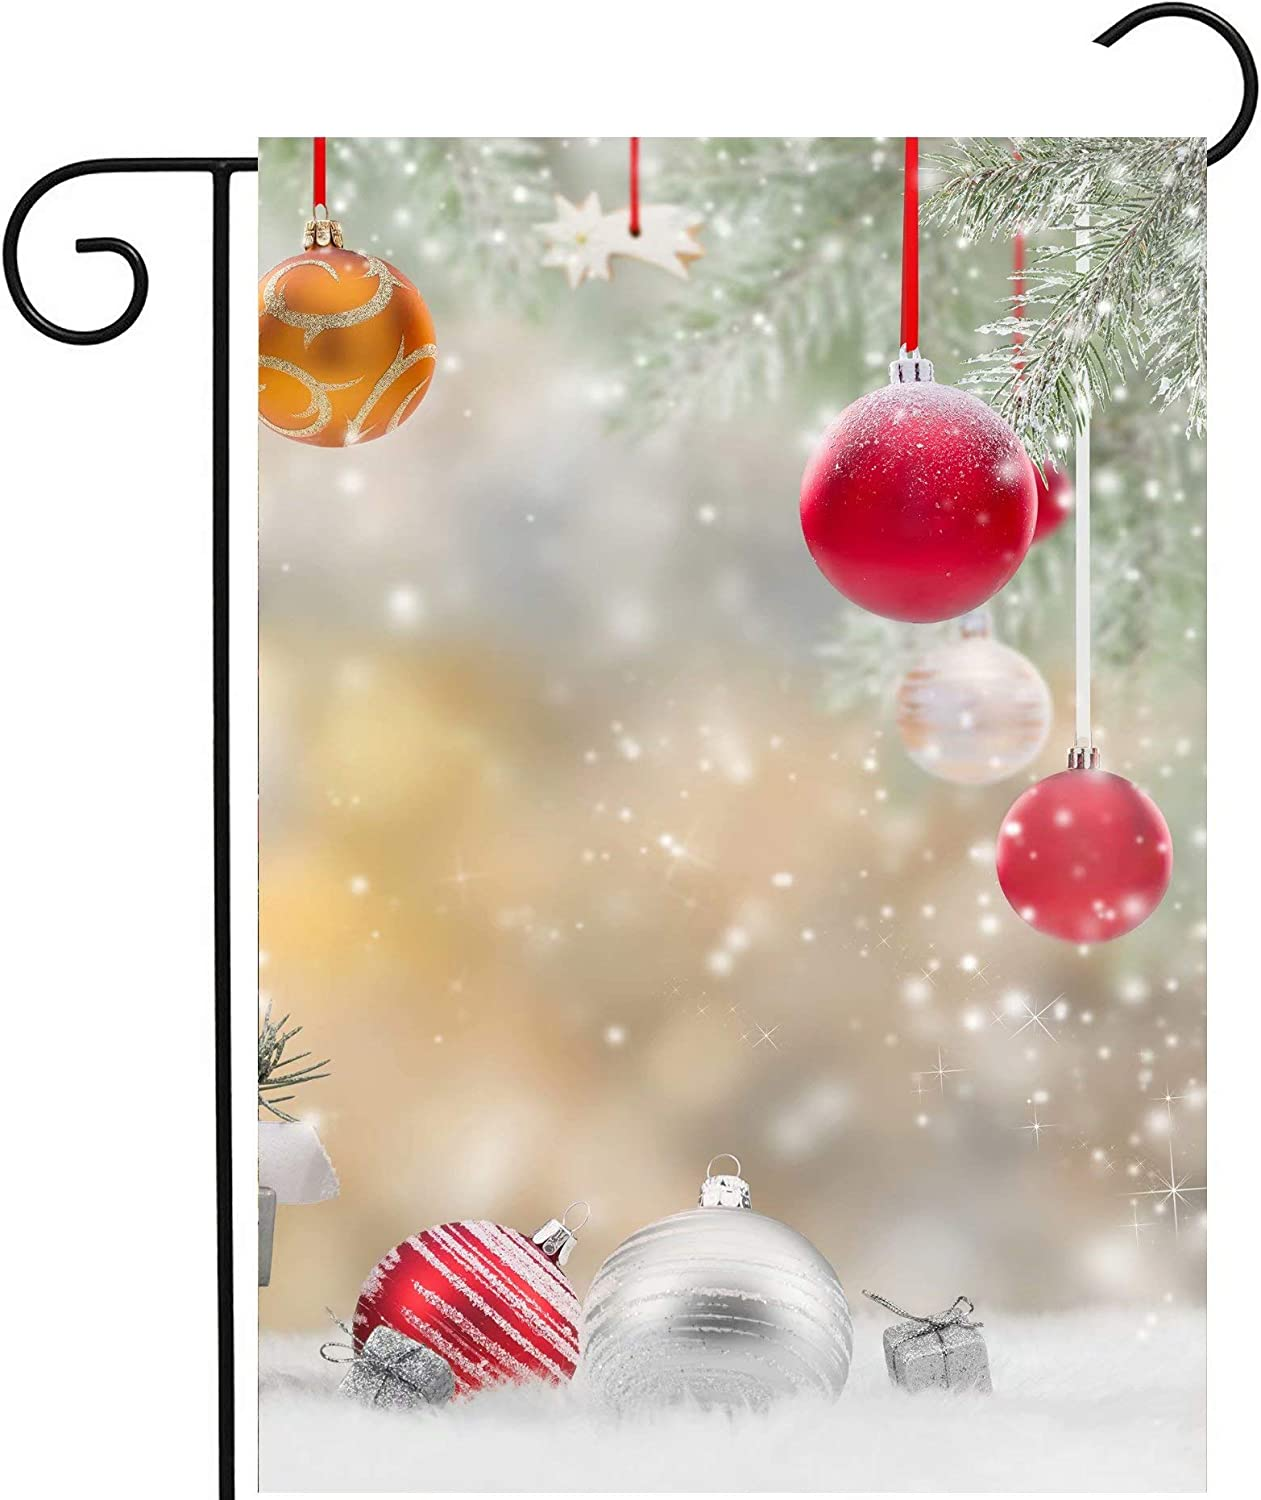 Pickako Christmas Xmas New Year Balls Tree Gifts Winter Holiday Decorations Garden Yard Flag 12 x 18 Inch, Double Sided Outdoor Decorative Welcome Flags Banners for Home House Lawn Patio